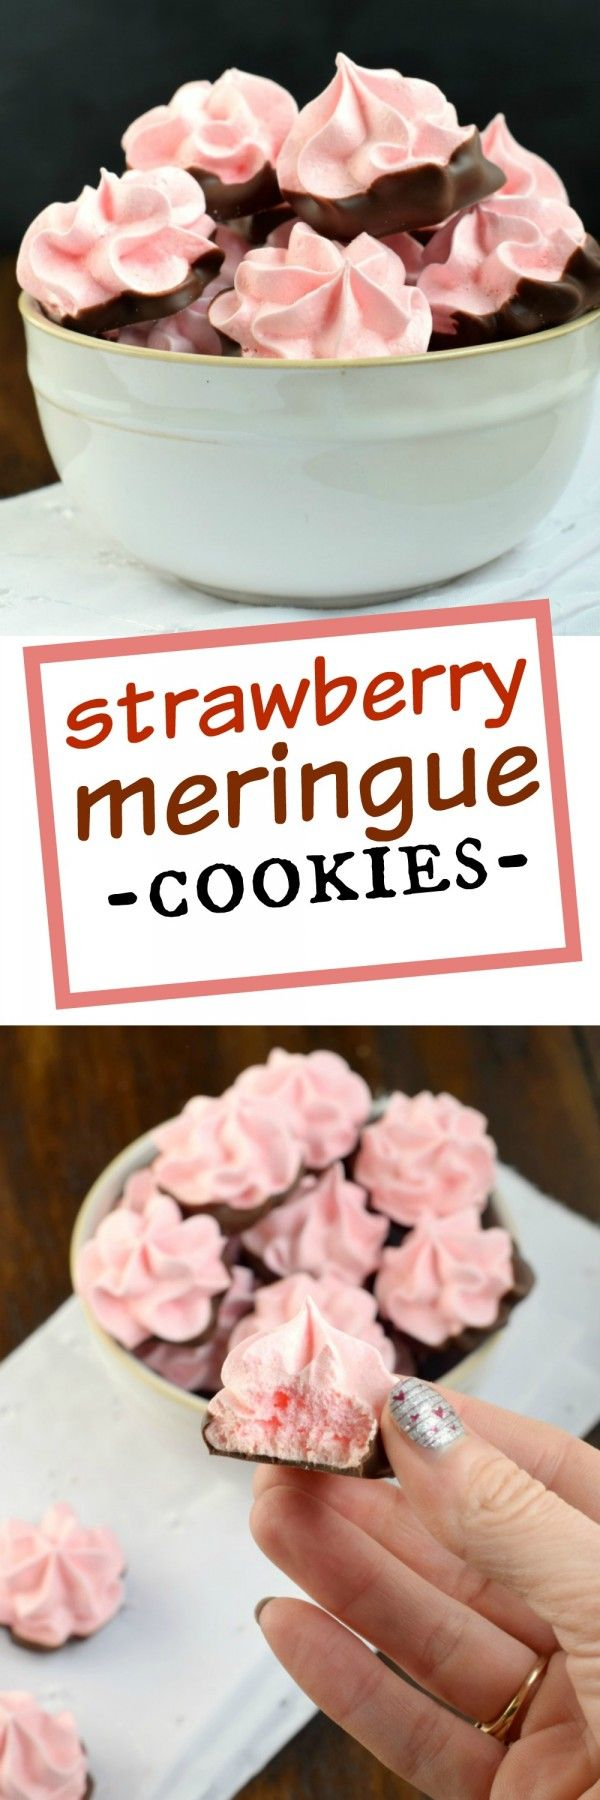 Strawberry Meringues - Shugary Sweets